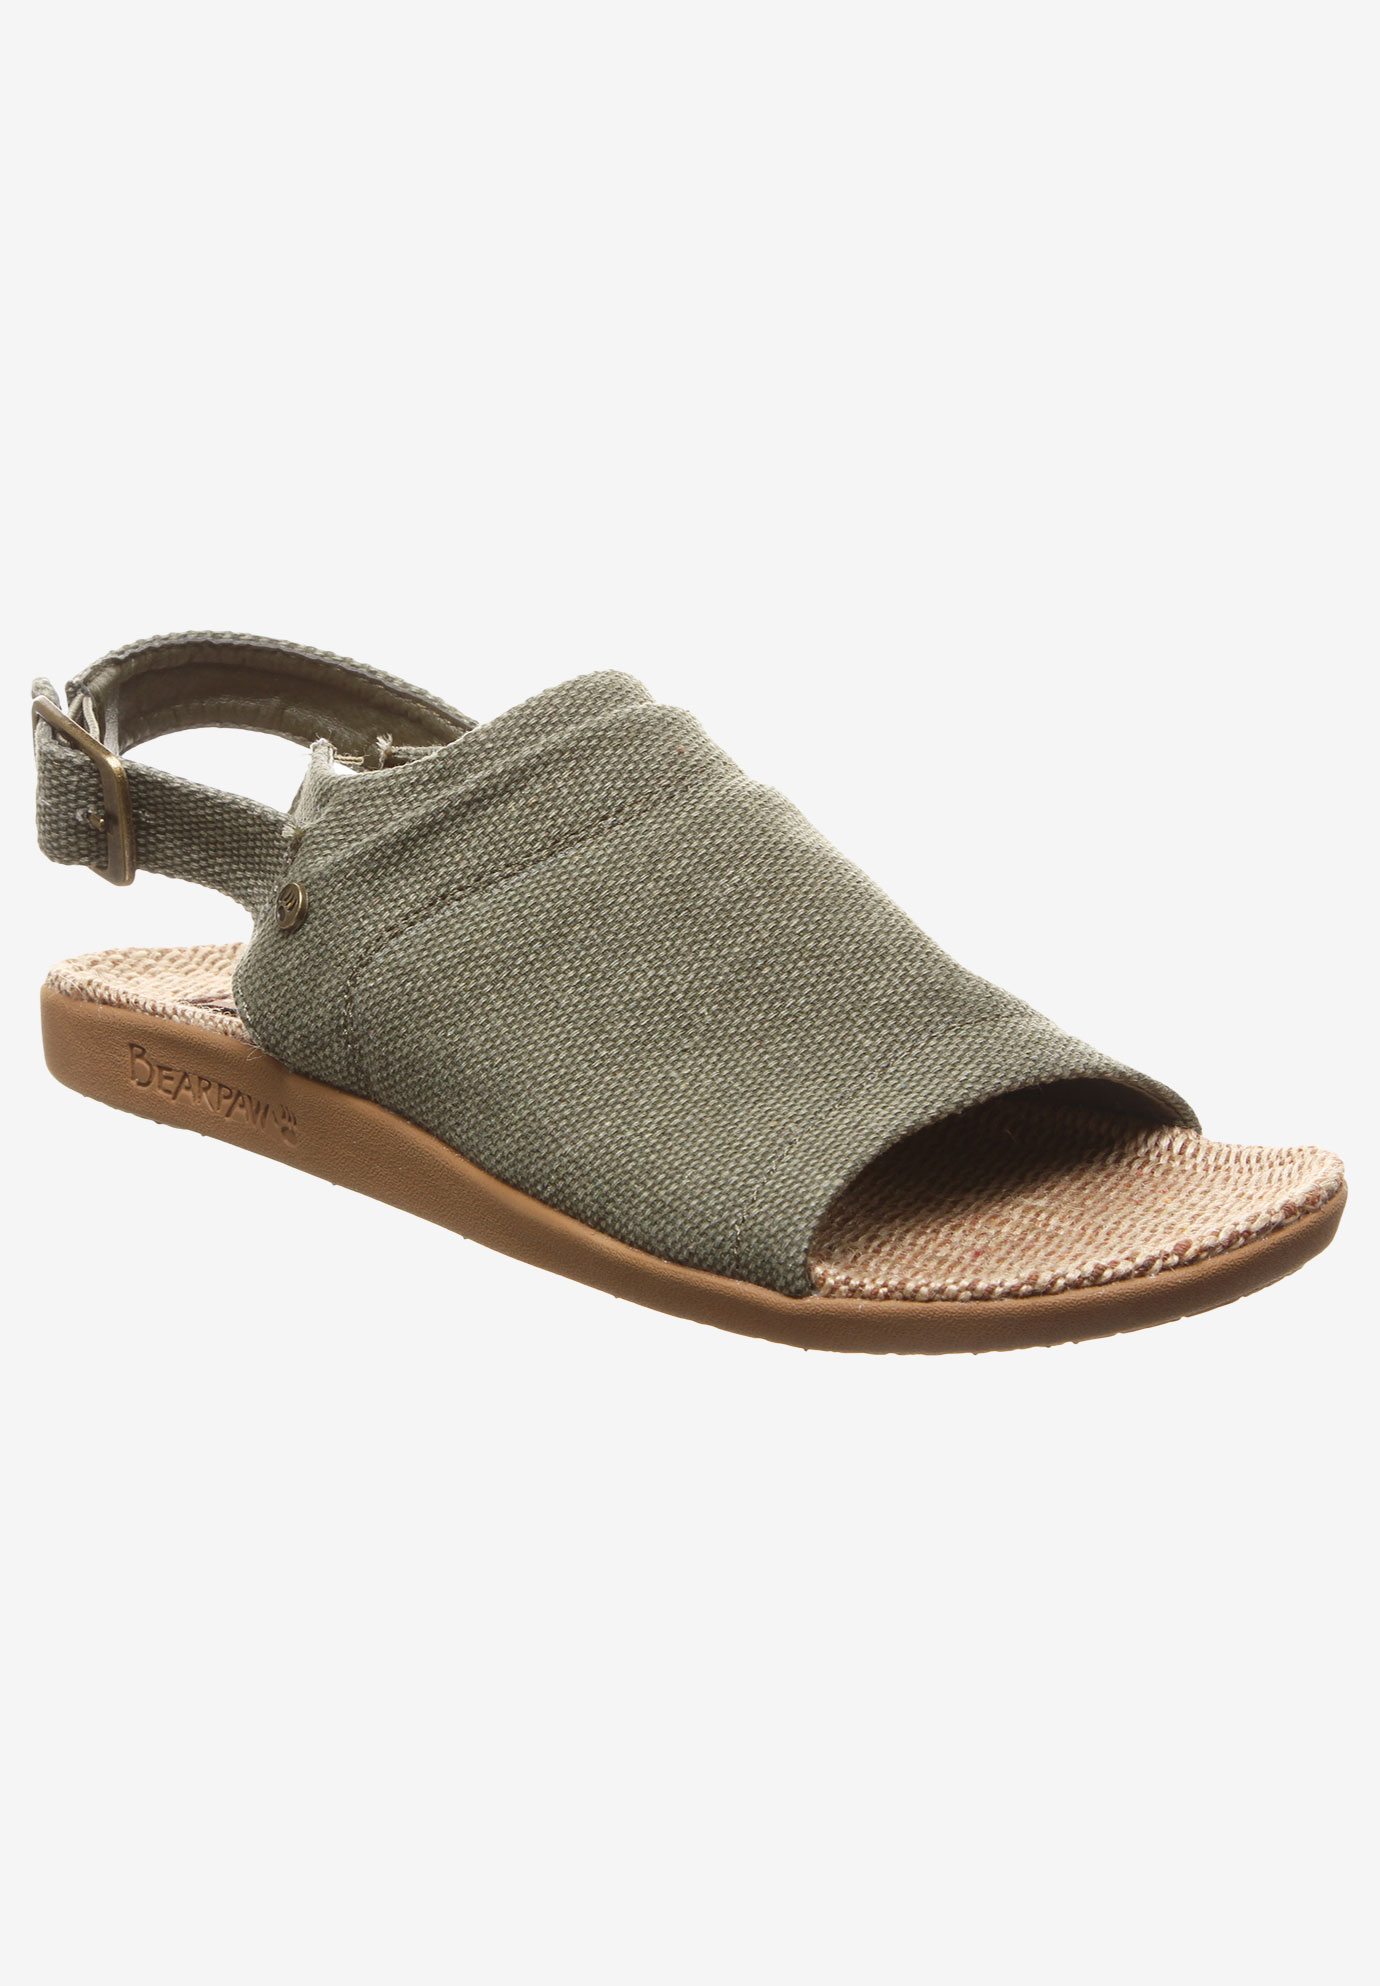 Duran Sandal by BEARPAW®,